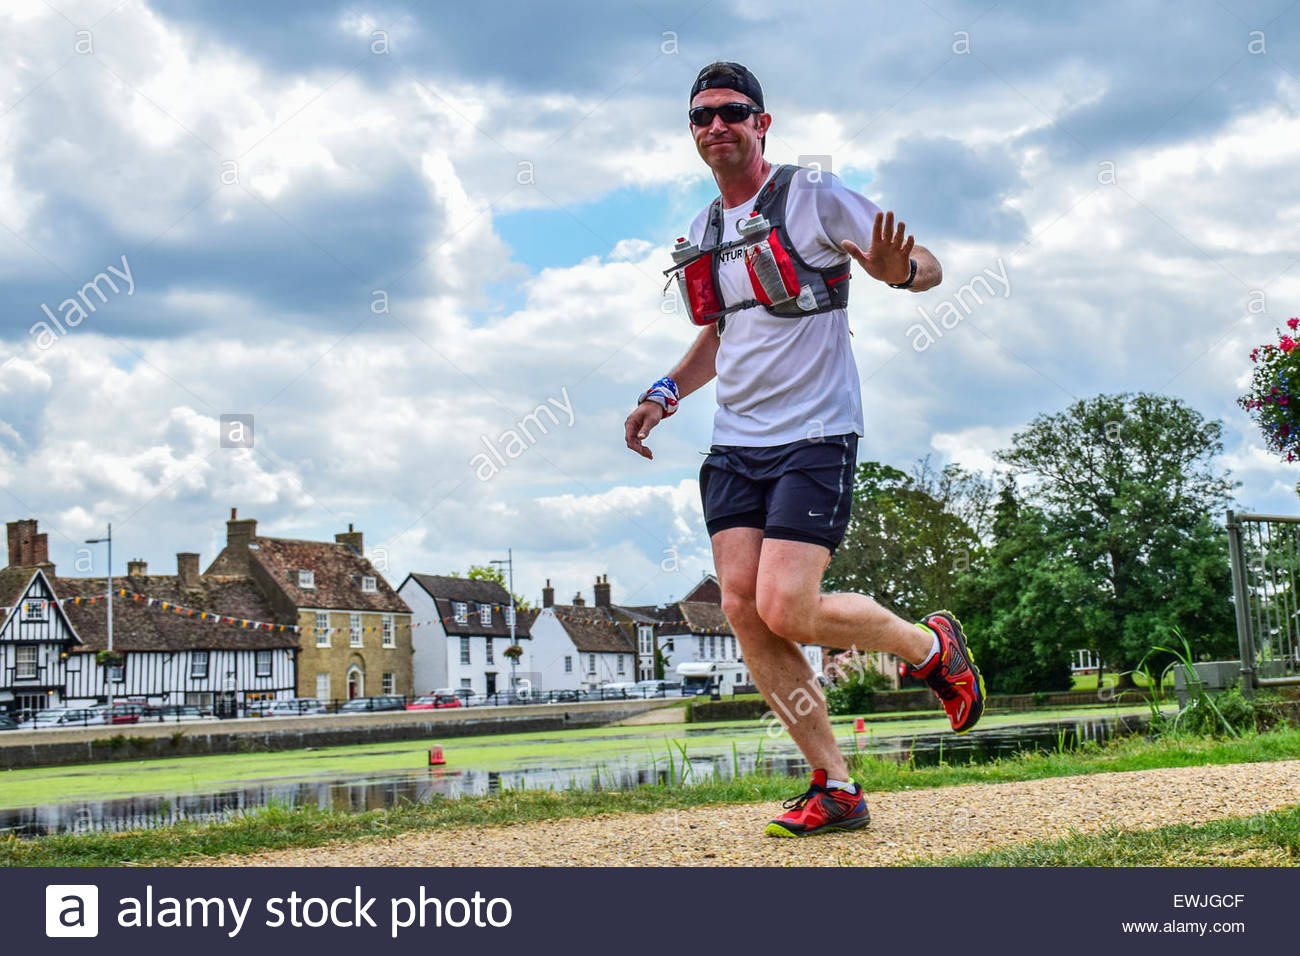 Godmanchester, Cambridgeshire, UK. 27th June, 2015. Darren Hancocks runs by the river with the landmark building - Stock Image